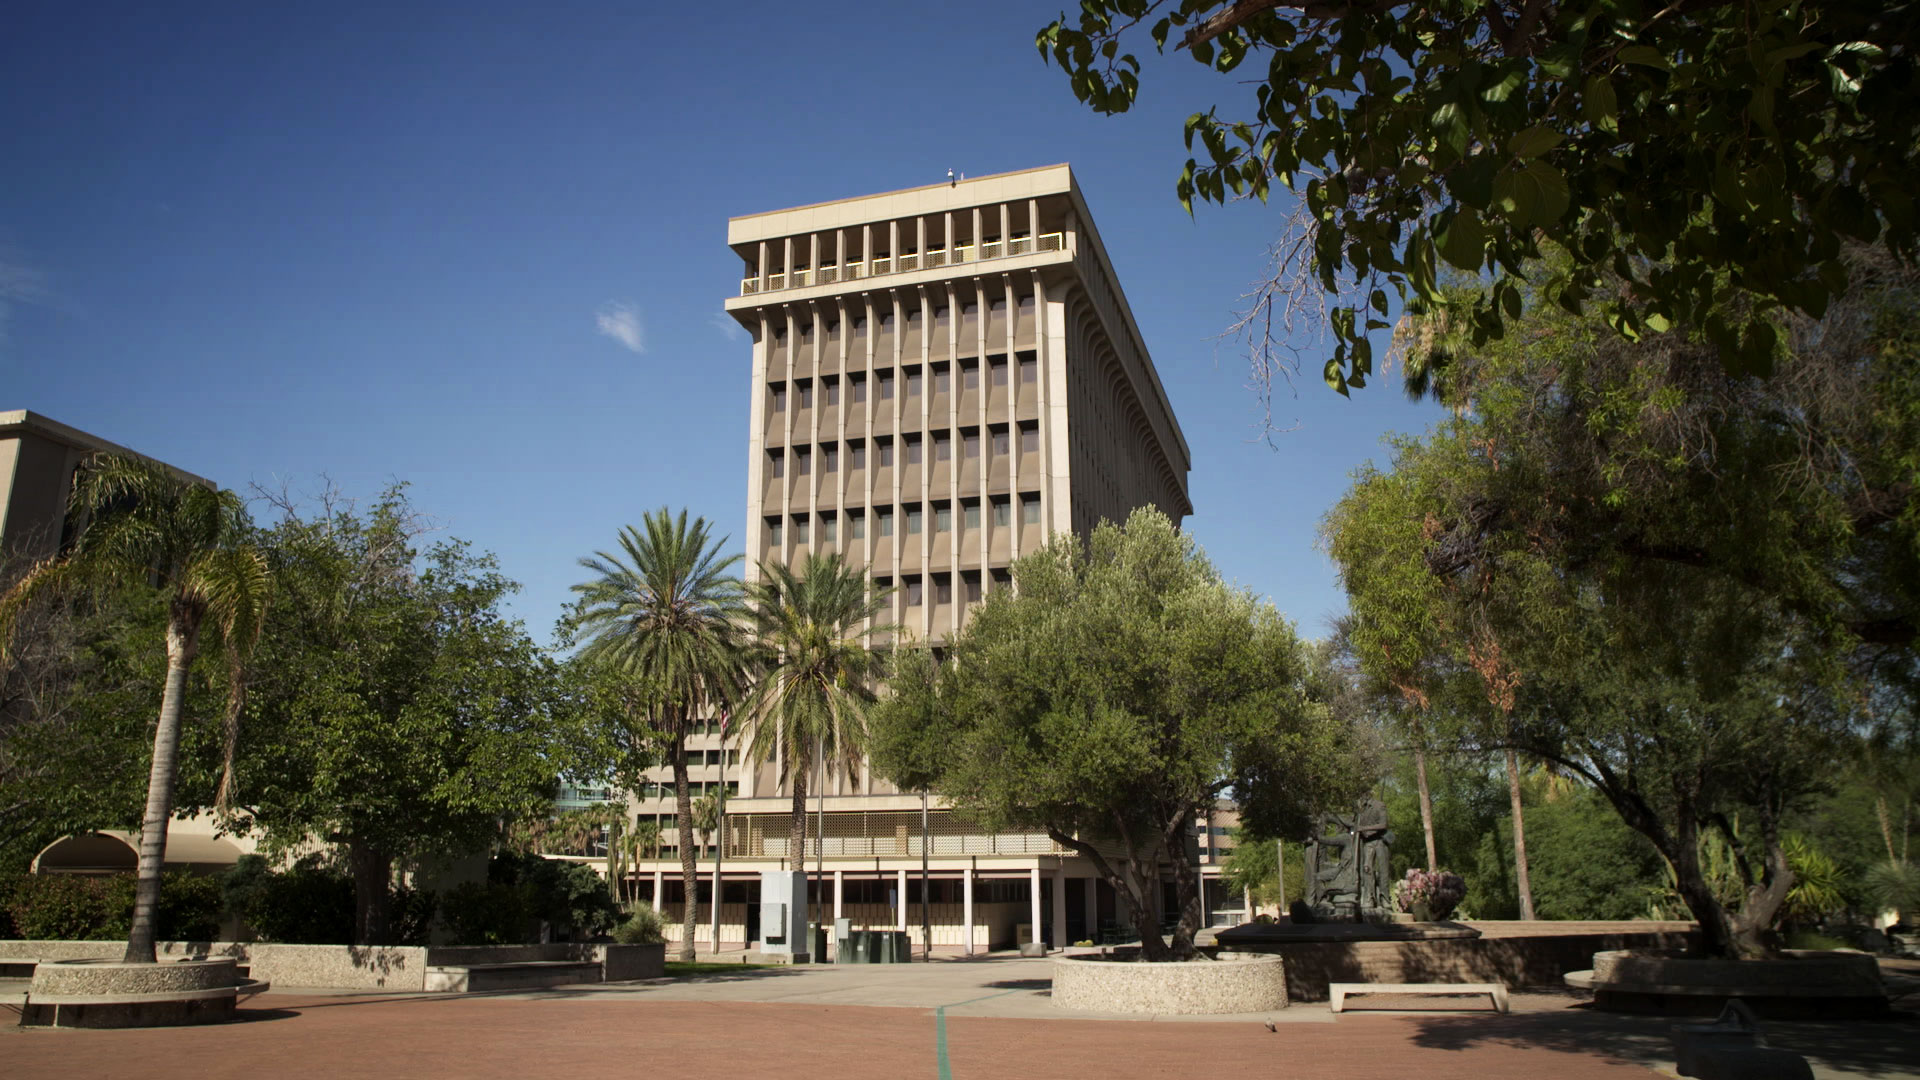 Tucson City Hall seen from El Presidio Plaza.